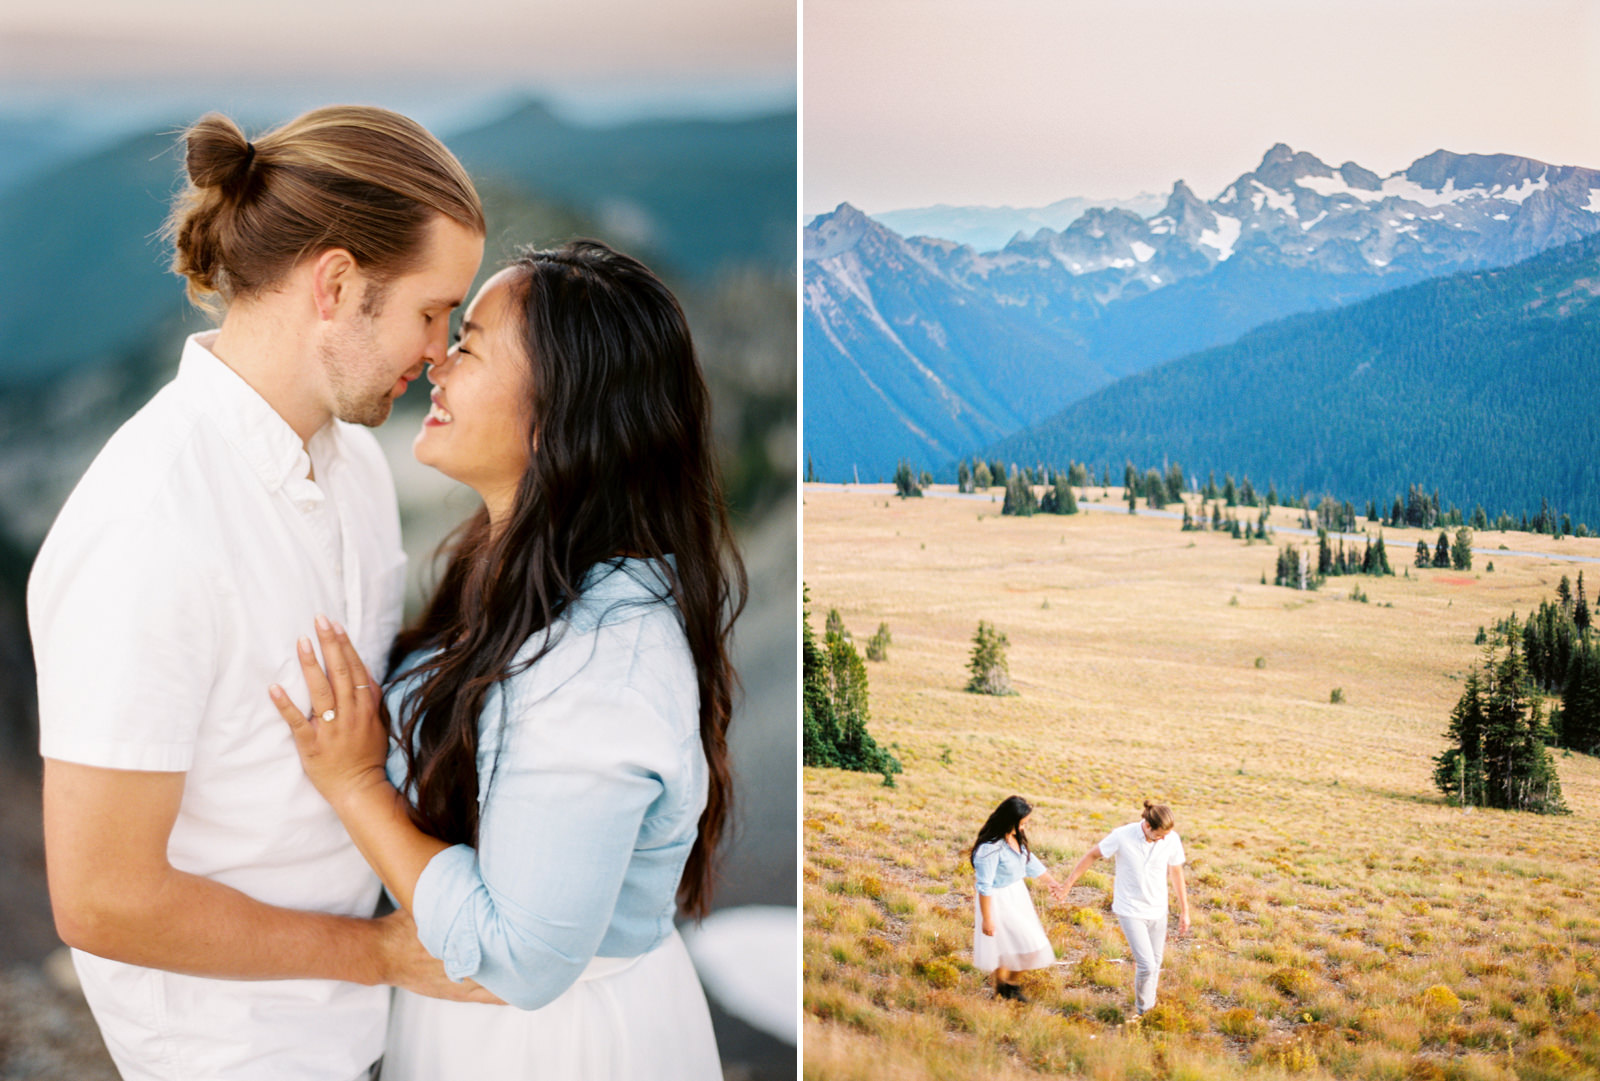 003-mt-rainier-engagement-session-by-seattle-film-photographer-ryan-flynn.jpg